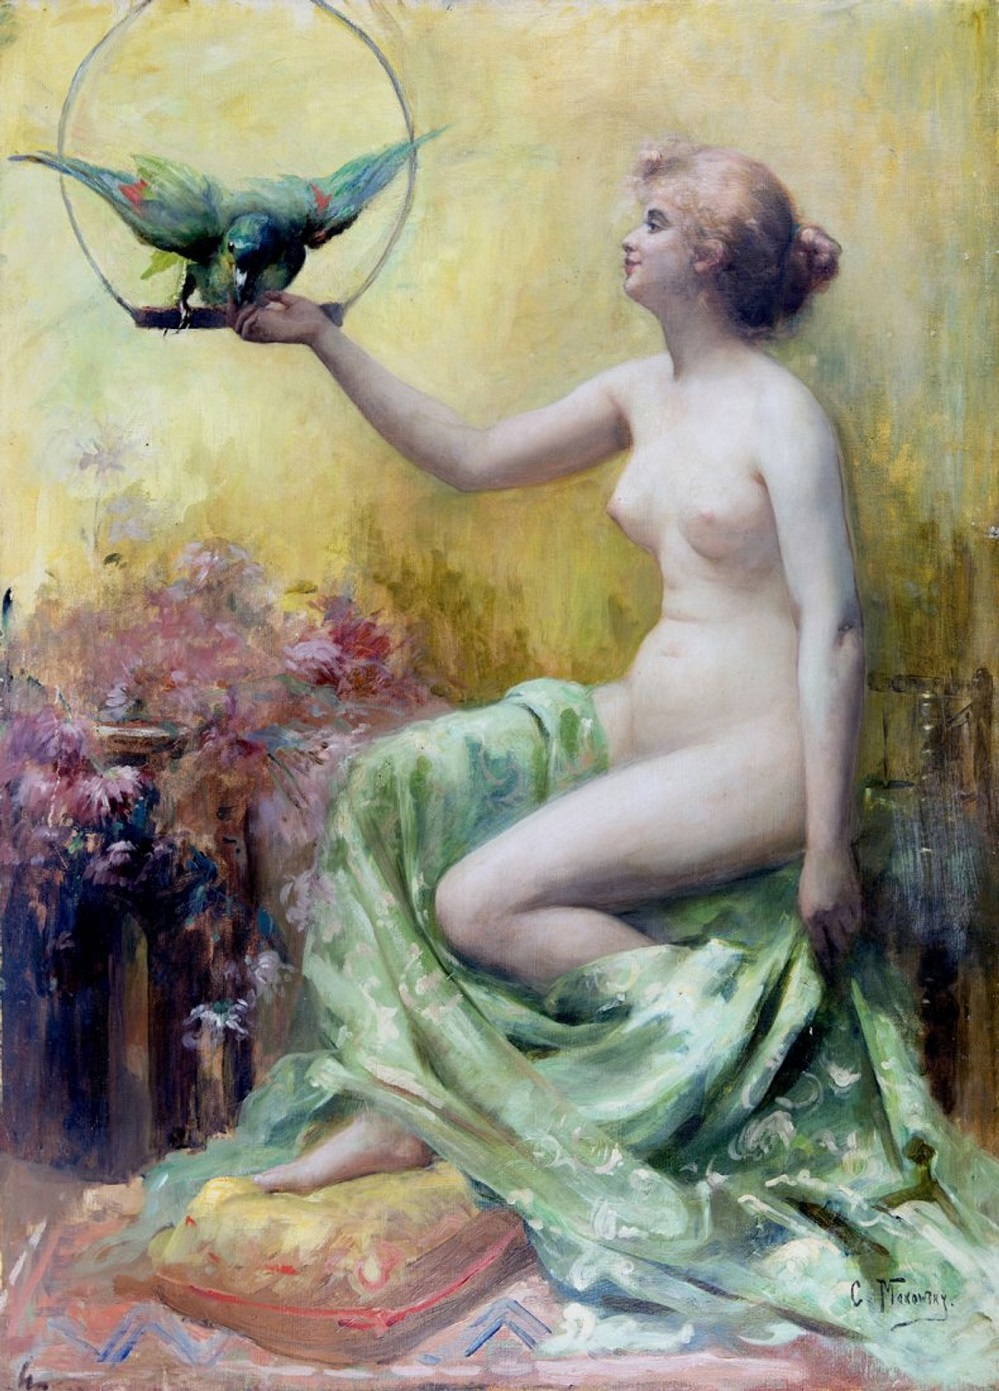 A Tender Touch (Woman with Parrot).